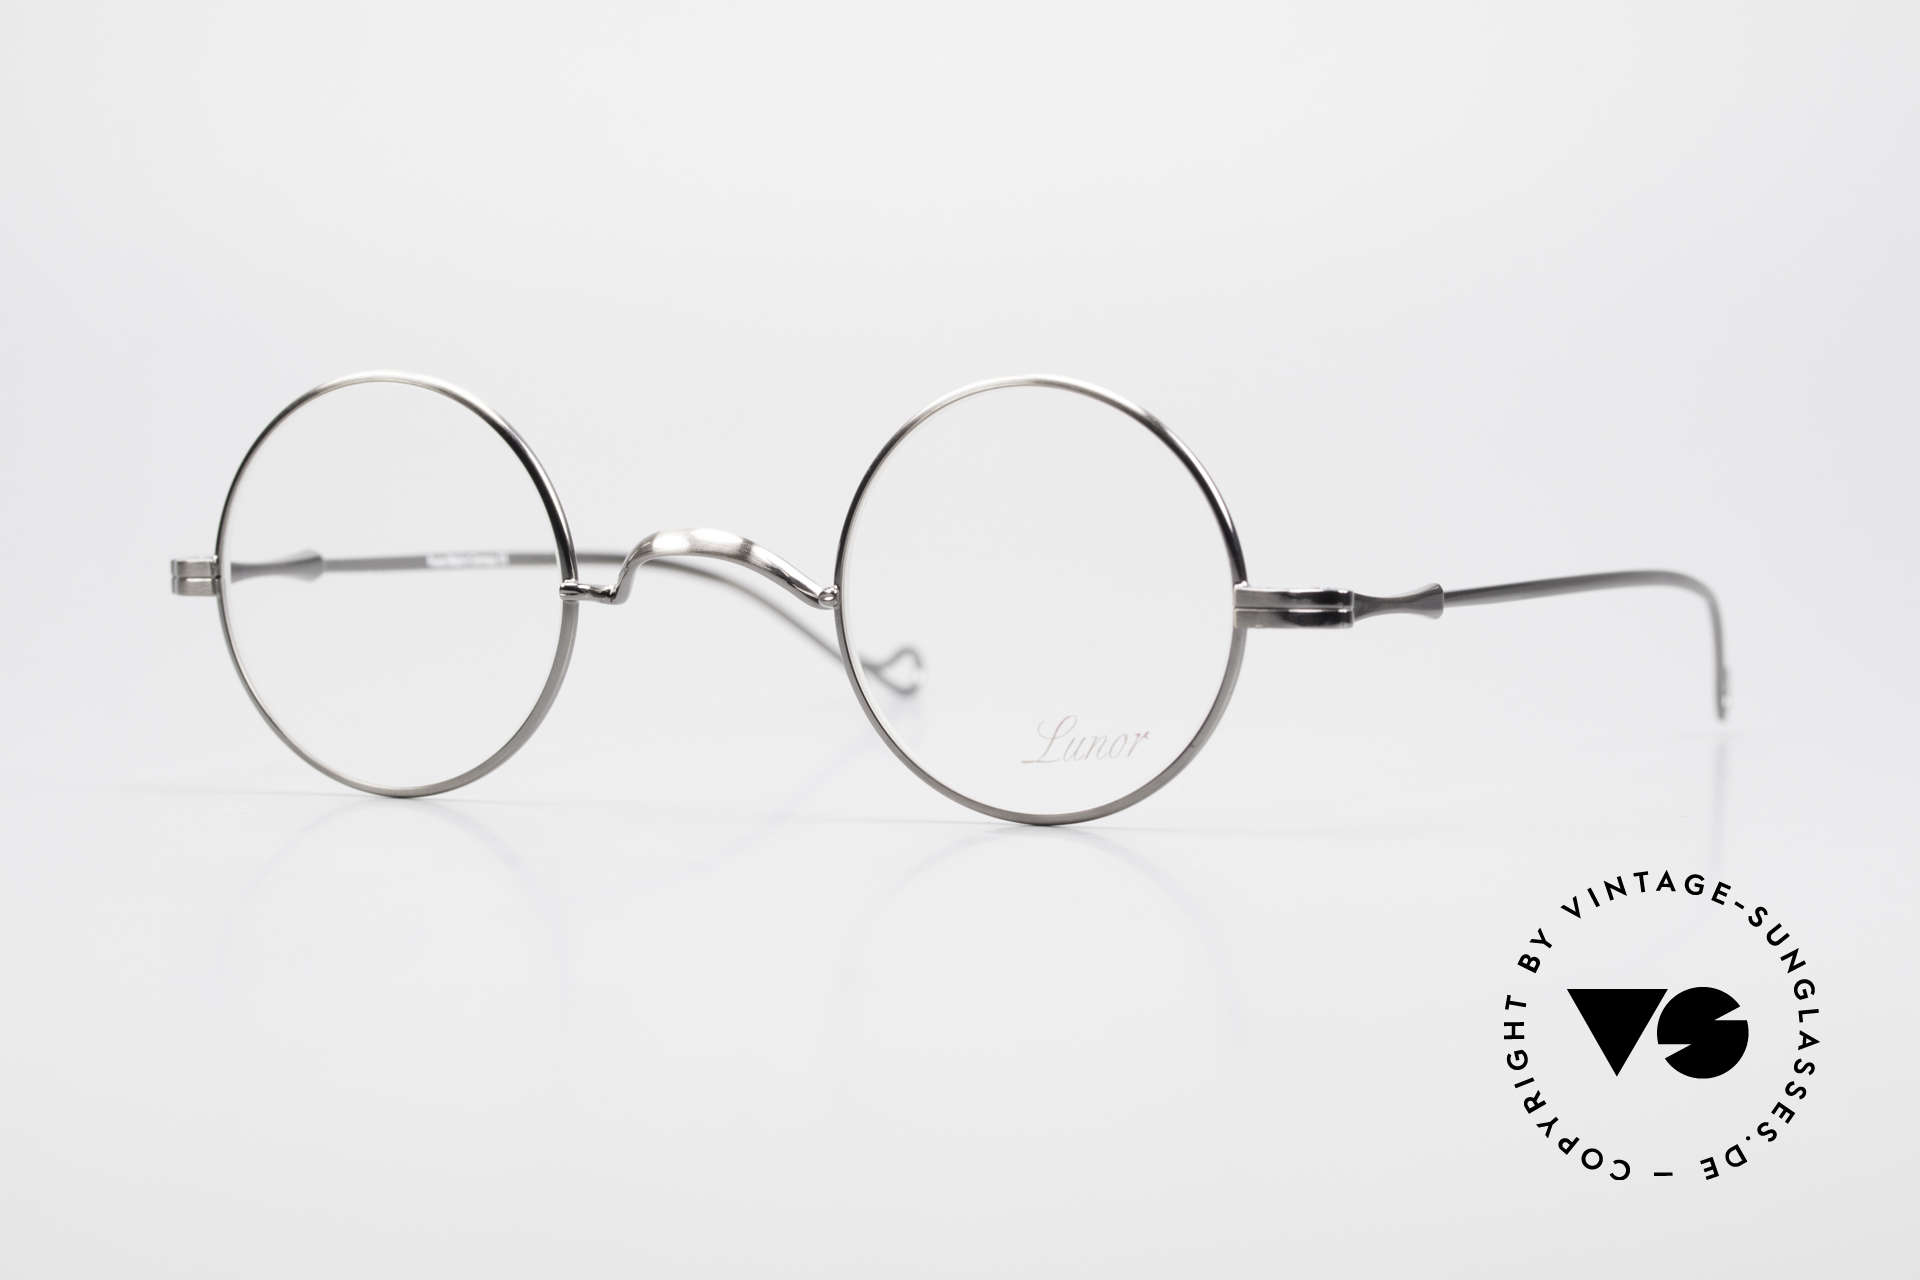 """Lunor II 12 Small Round Luxury Glasses, Lunor: shortcut for French """"Lunette d'Or"""" (gold glasses), Made for Men and Women"""